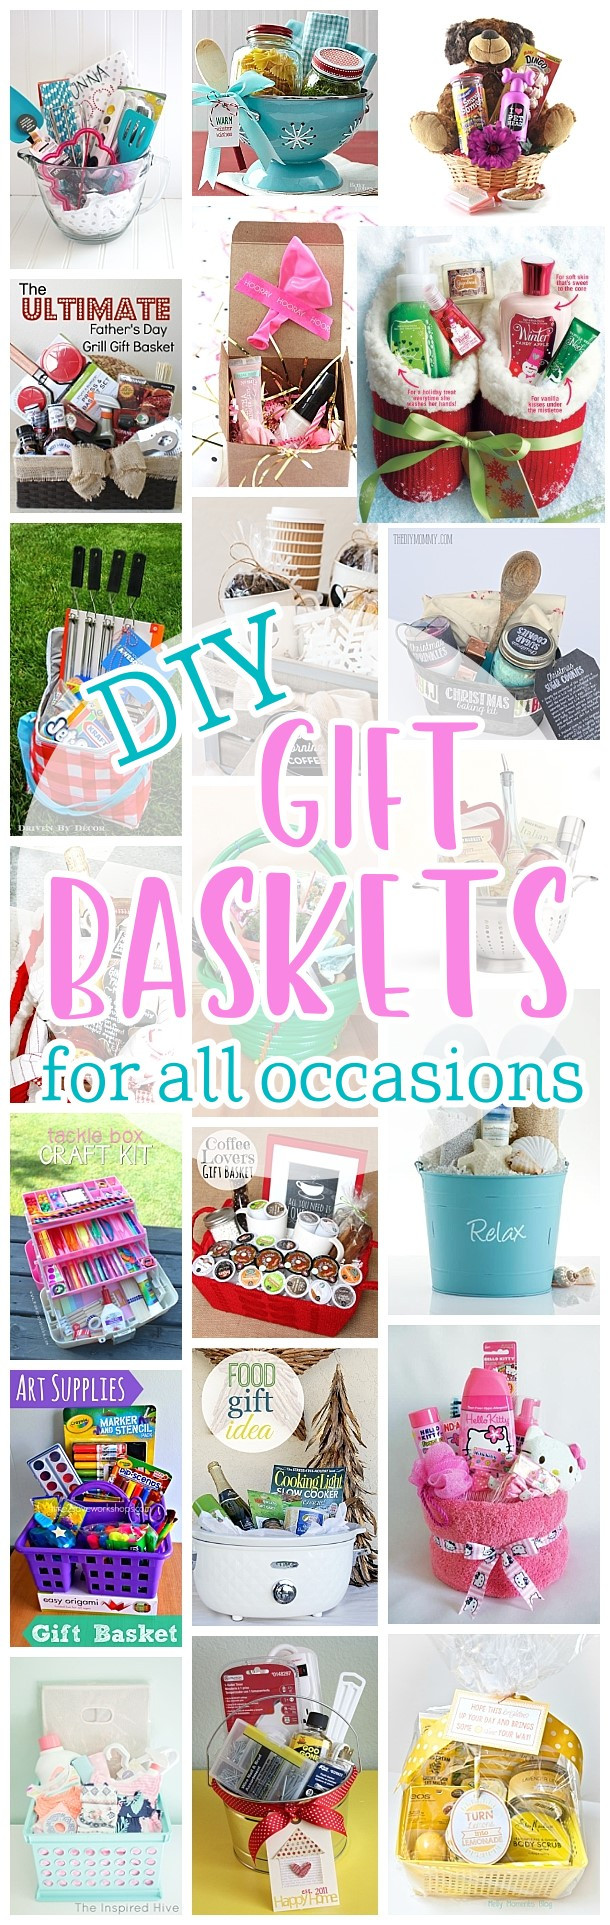 Diy Thank You Gift Basket Ideas  Do it Yourself Gift Basket Ideas for Any and All Occasions